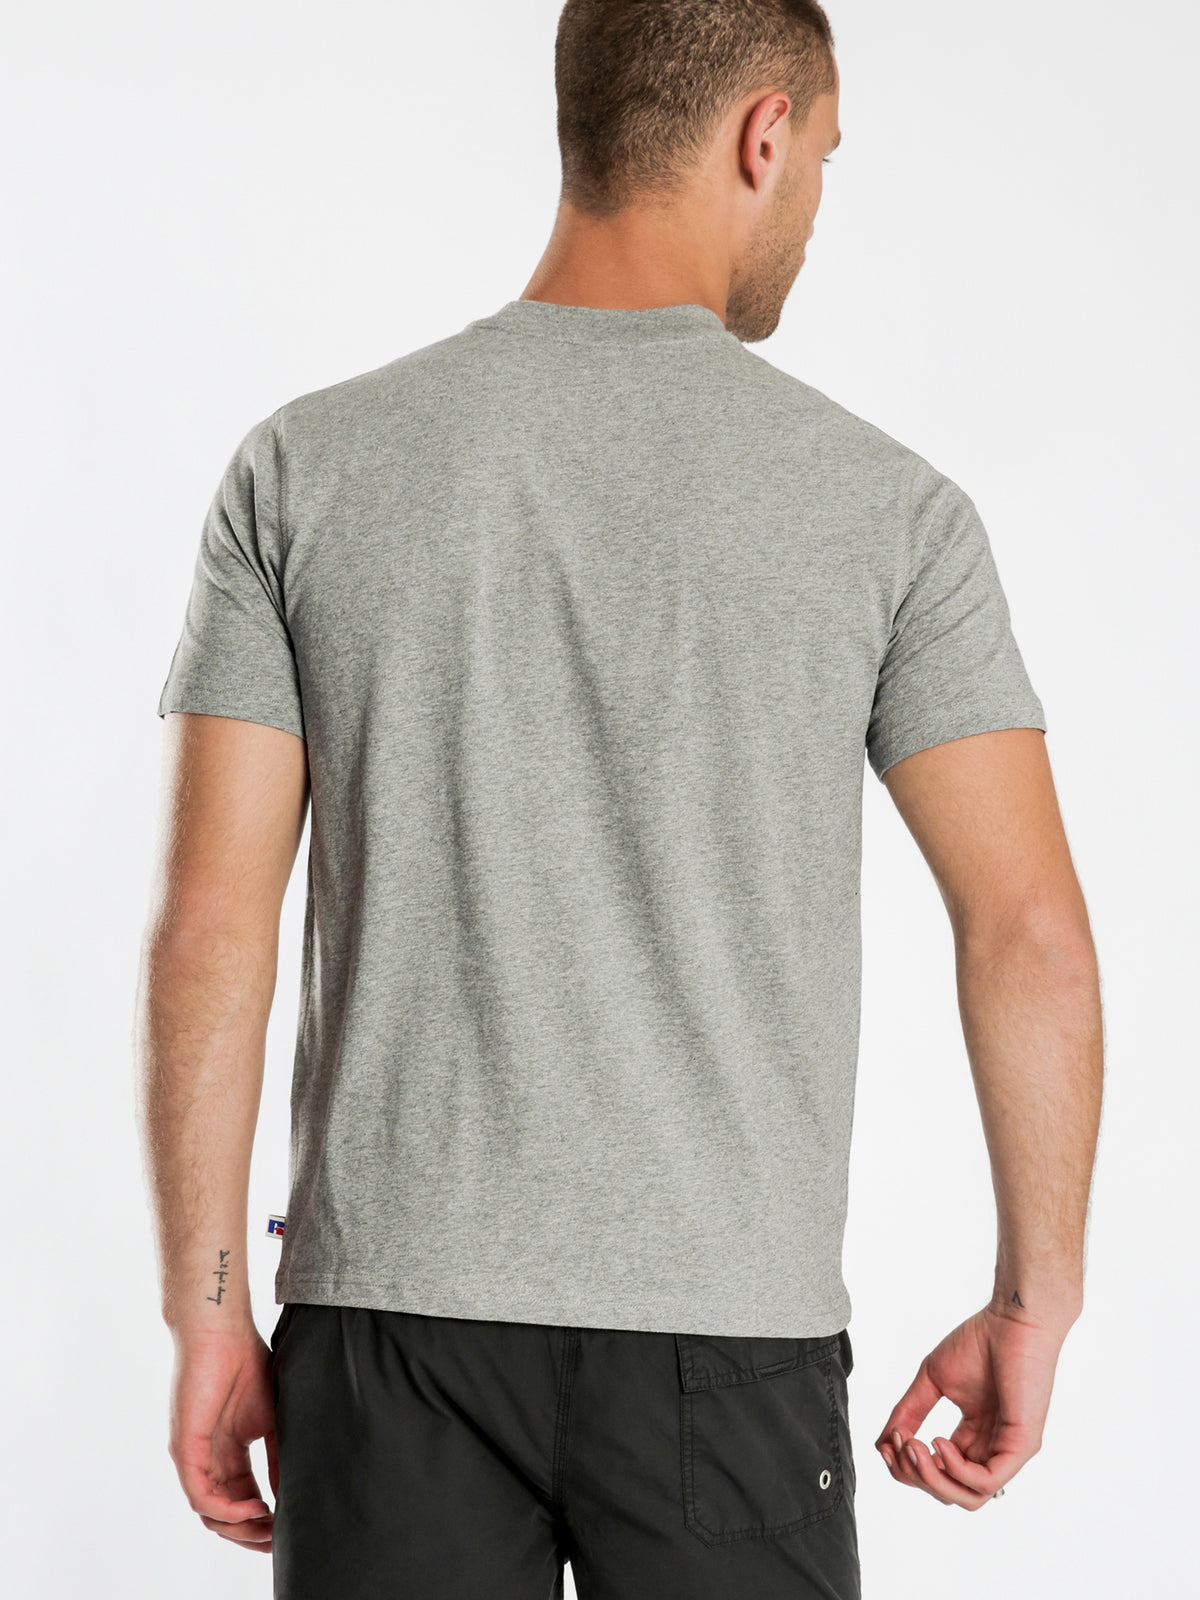 Jerry T-Shirt in Grey